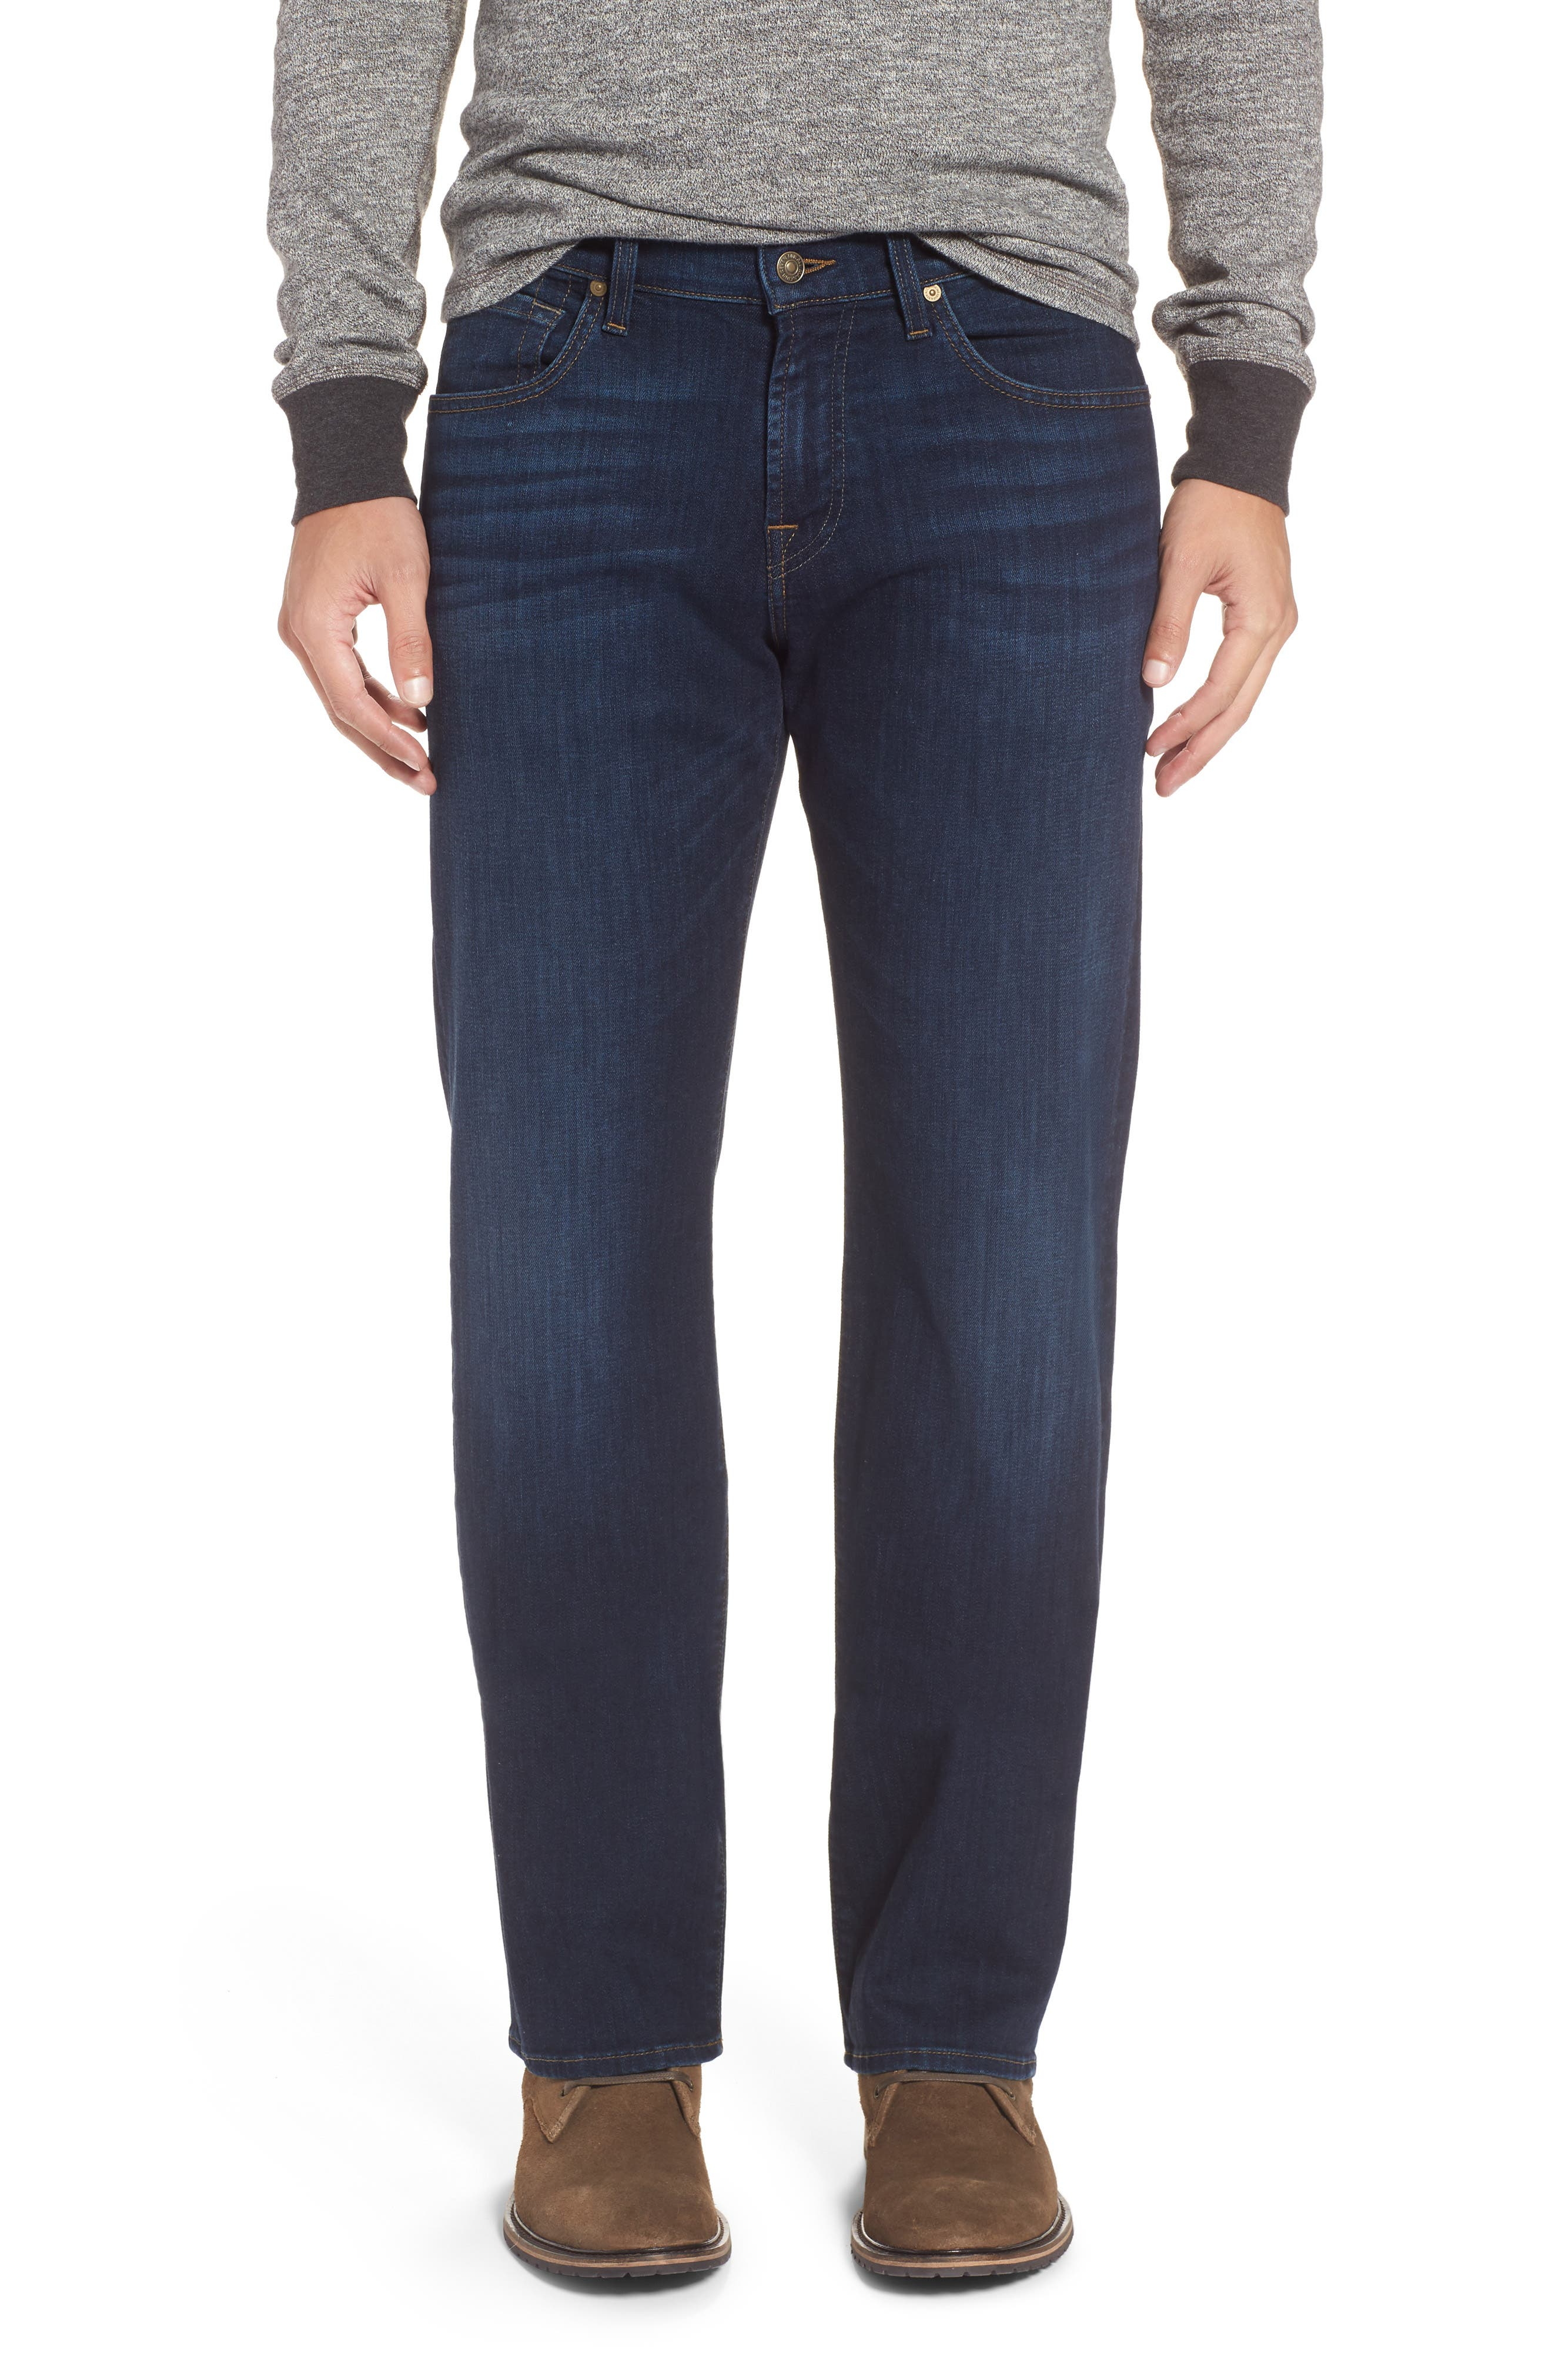 Austyn Relaxed Fit Jeans,                         Main,                         color, Valley Stream